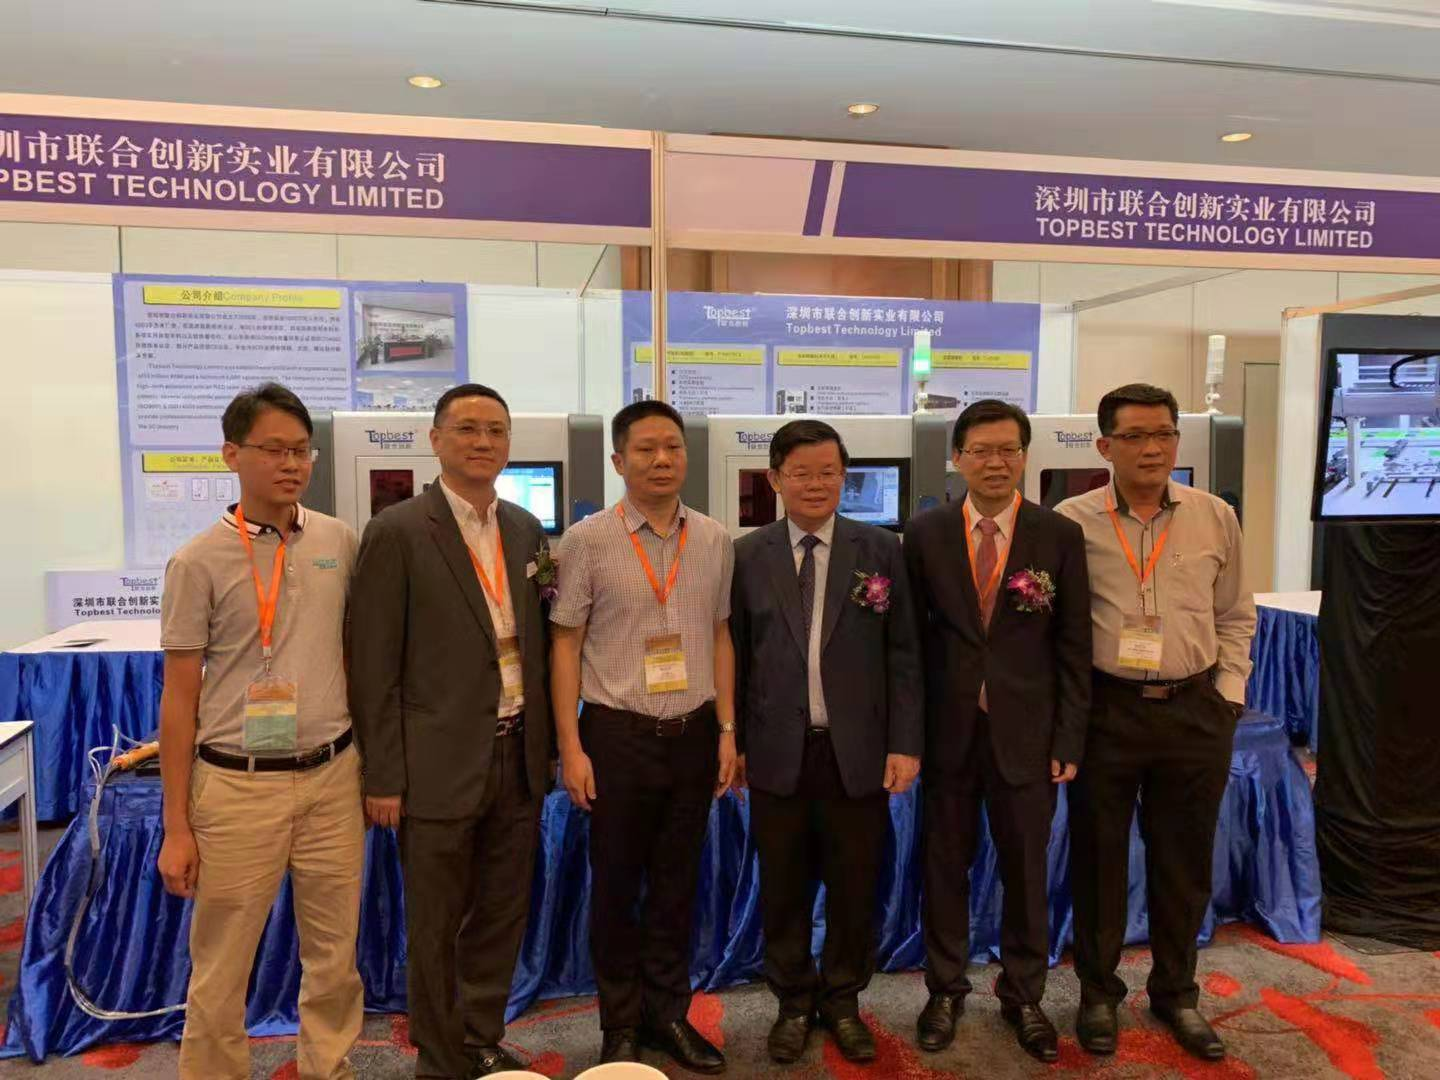 The First International (Penang) Electronic Elite Forum 2019